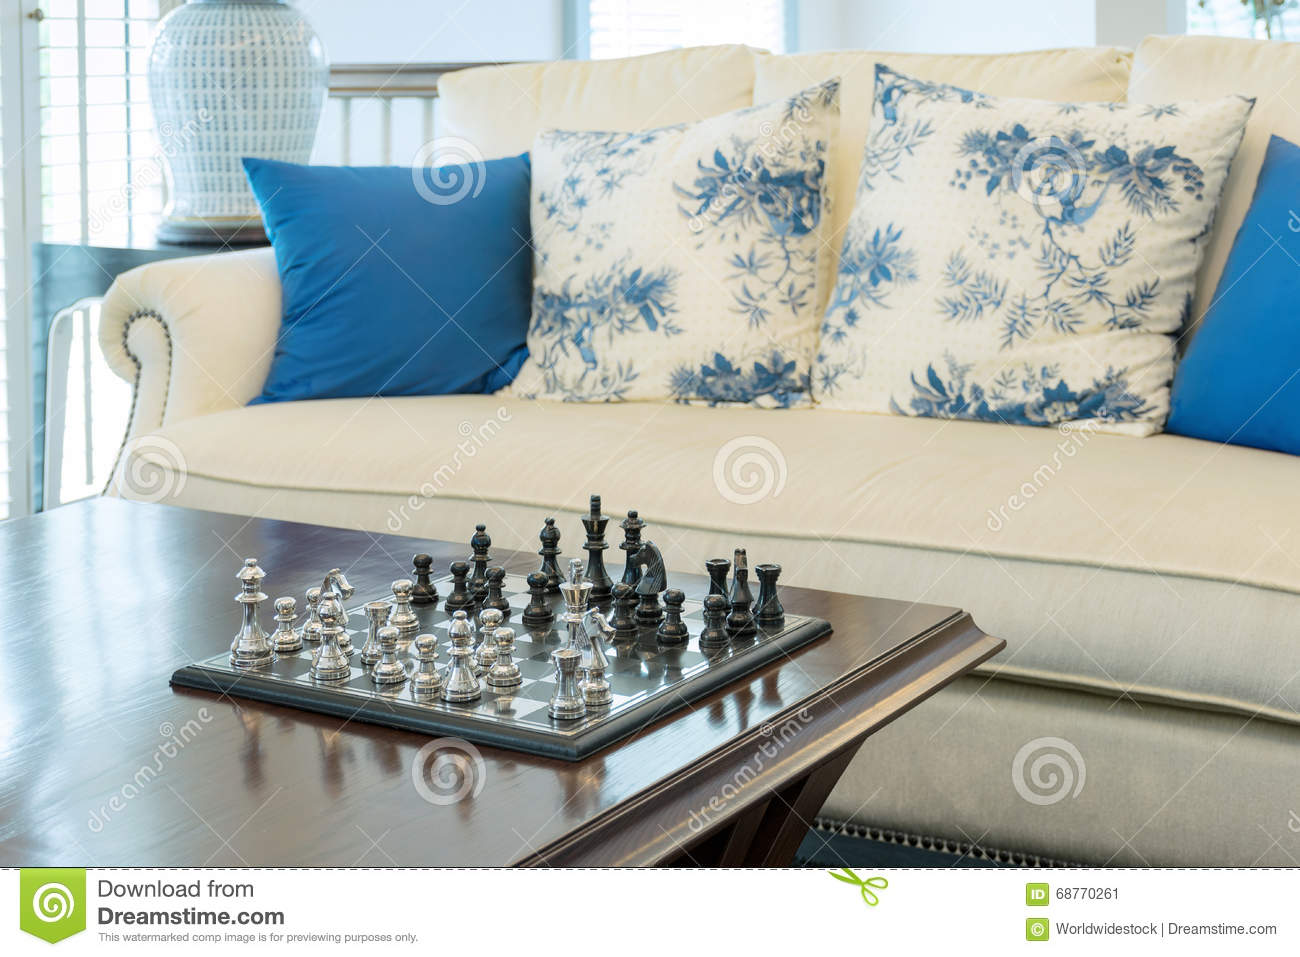 Chess Decor Decorative Chess Board With Chess Pieces In Luxury Living